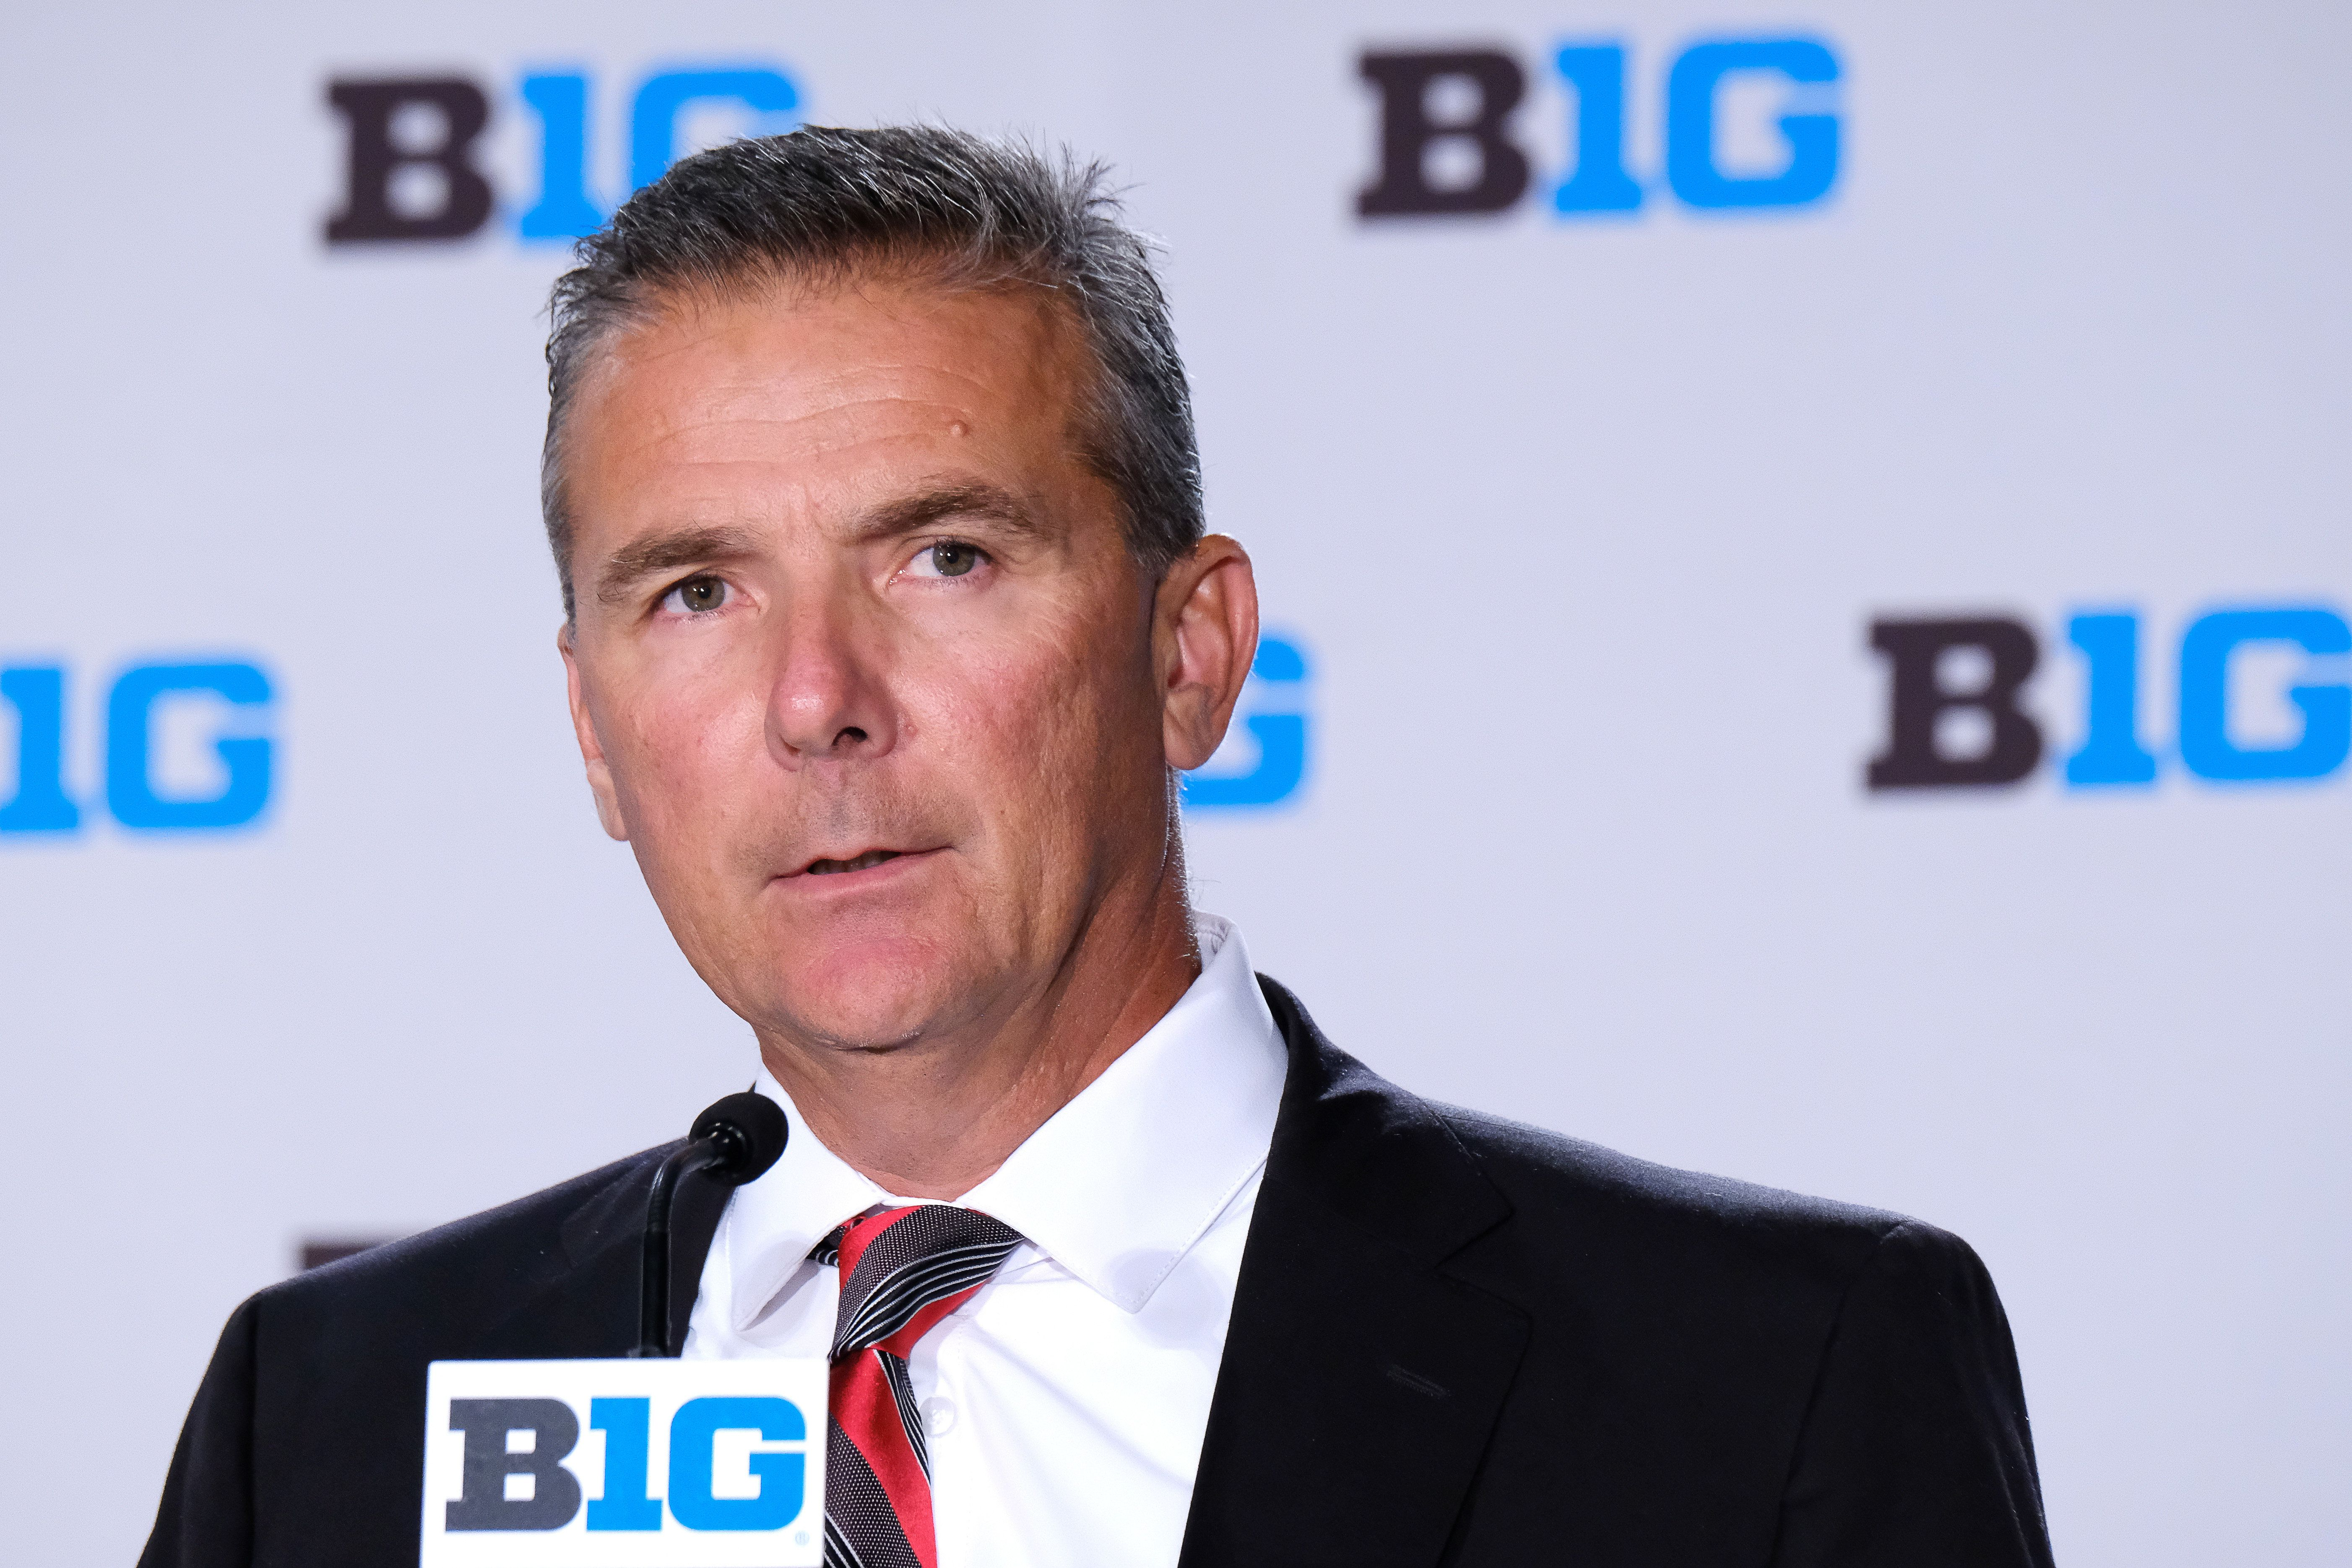 Ohio State Coach Urban Meyer Placed On Leave After Damning